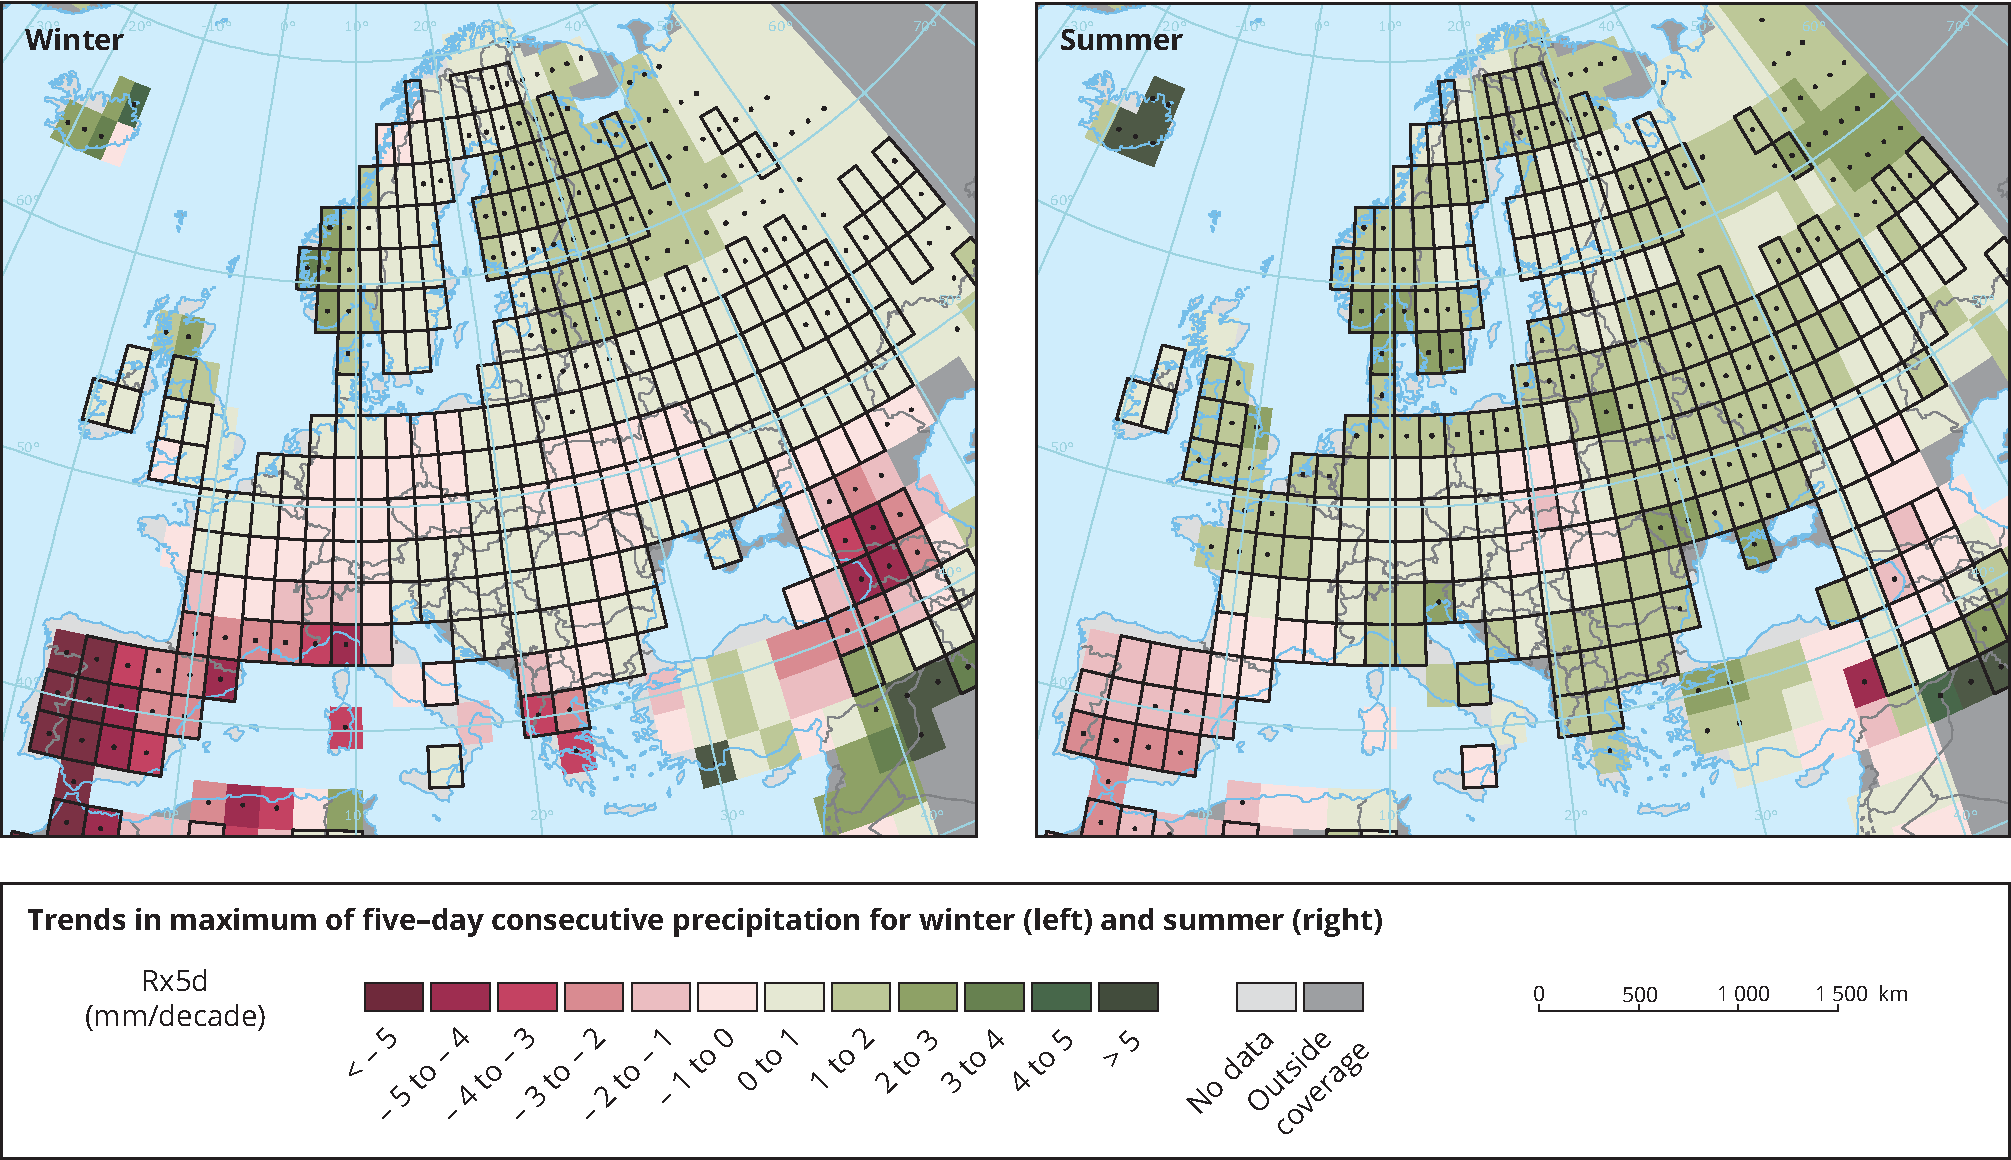 Observed trends in maximum annual five-day consecutive precipitation in winter and summer